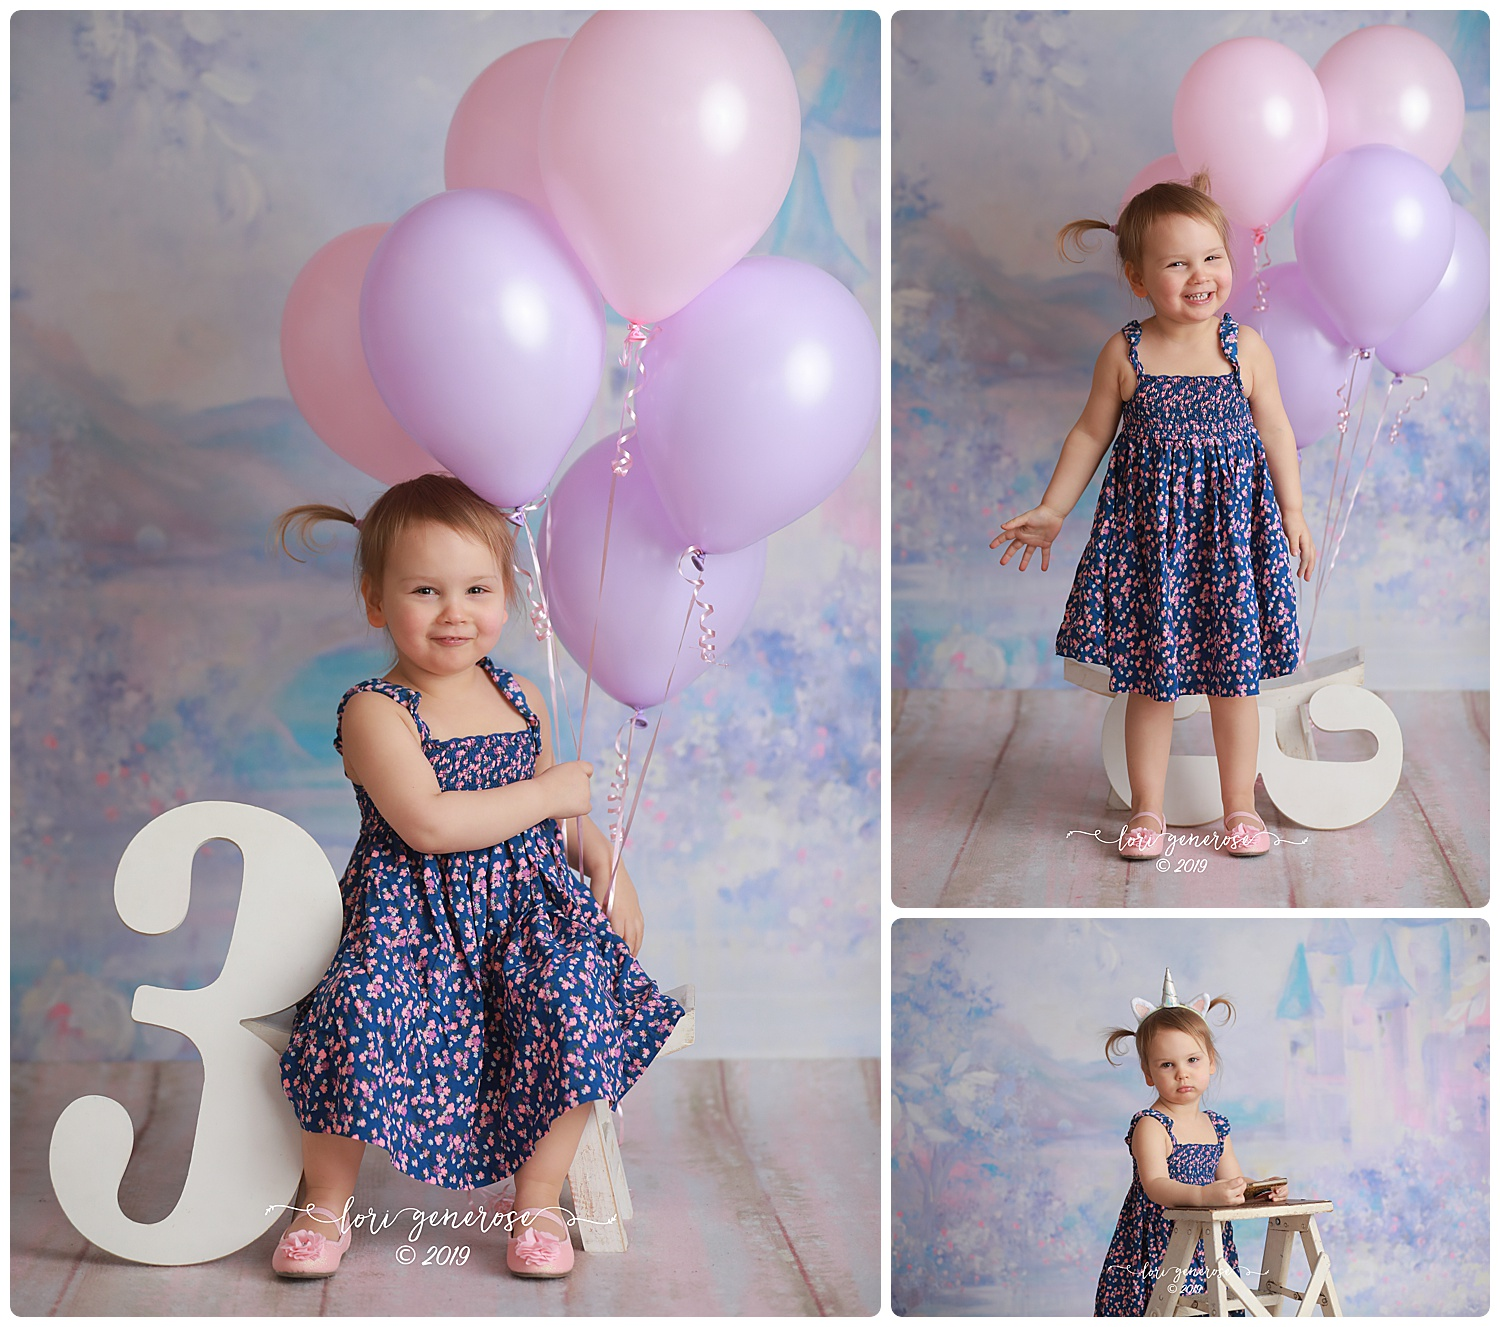 Claire is as happy as can be! She loved playing with her balloons and running away from my camera 😉  Happy 3 years little lady 💜